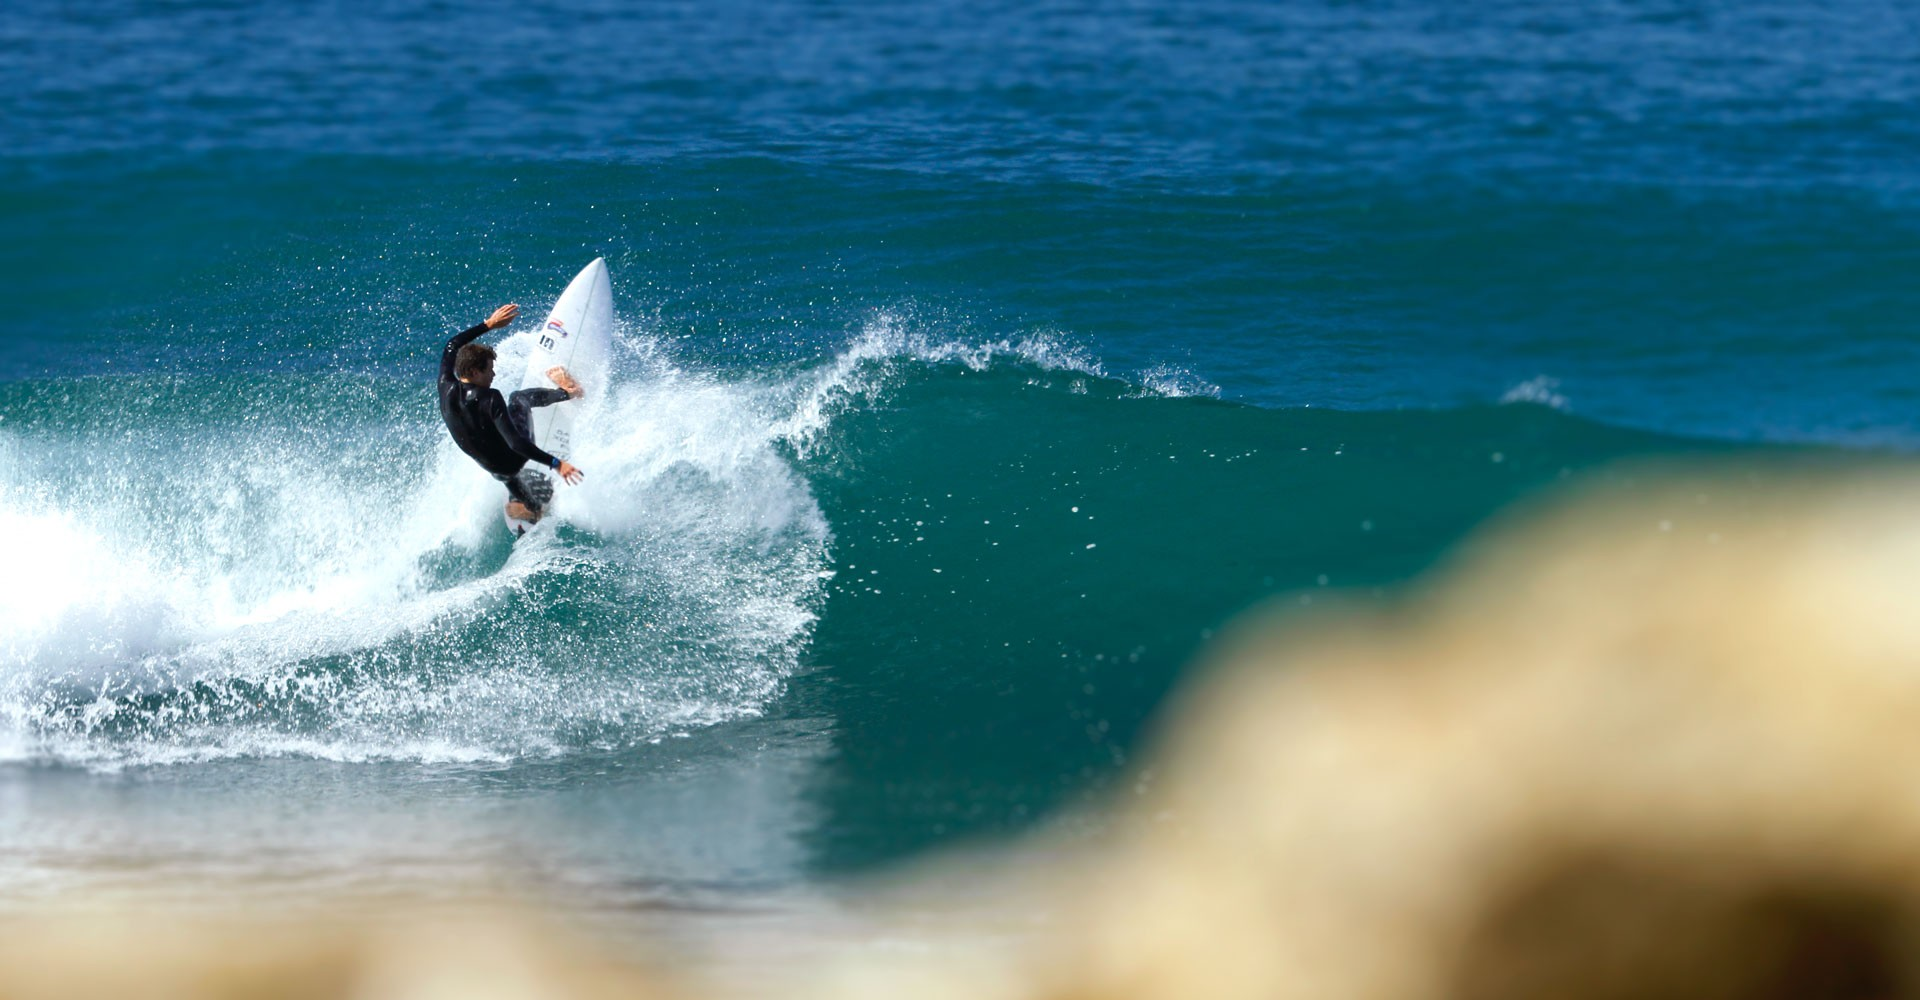 Free surfer Filipe Jervis is surfing for Mica Surfboards Team in Portugal.